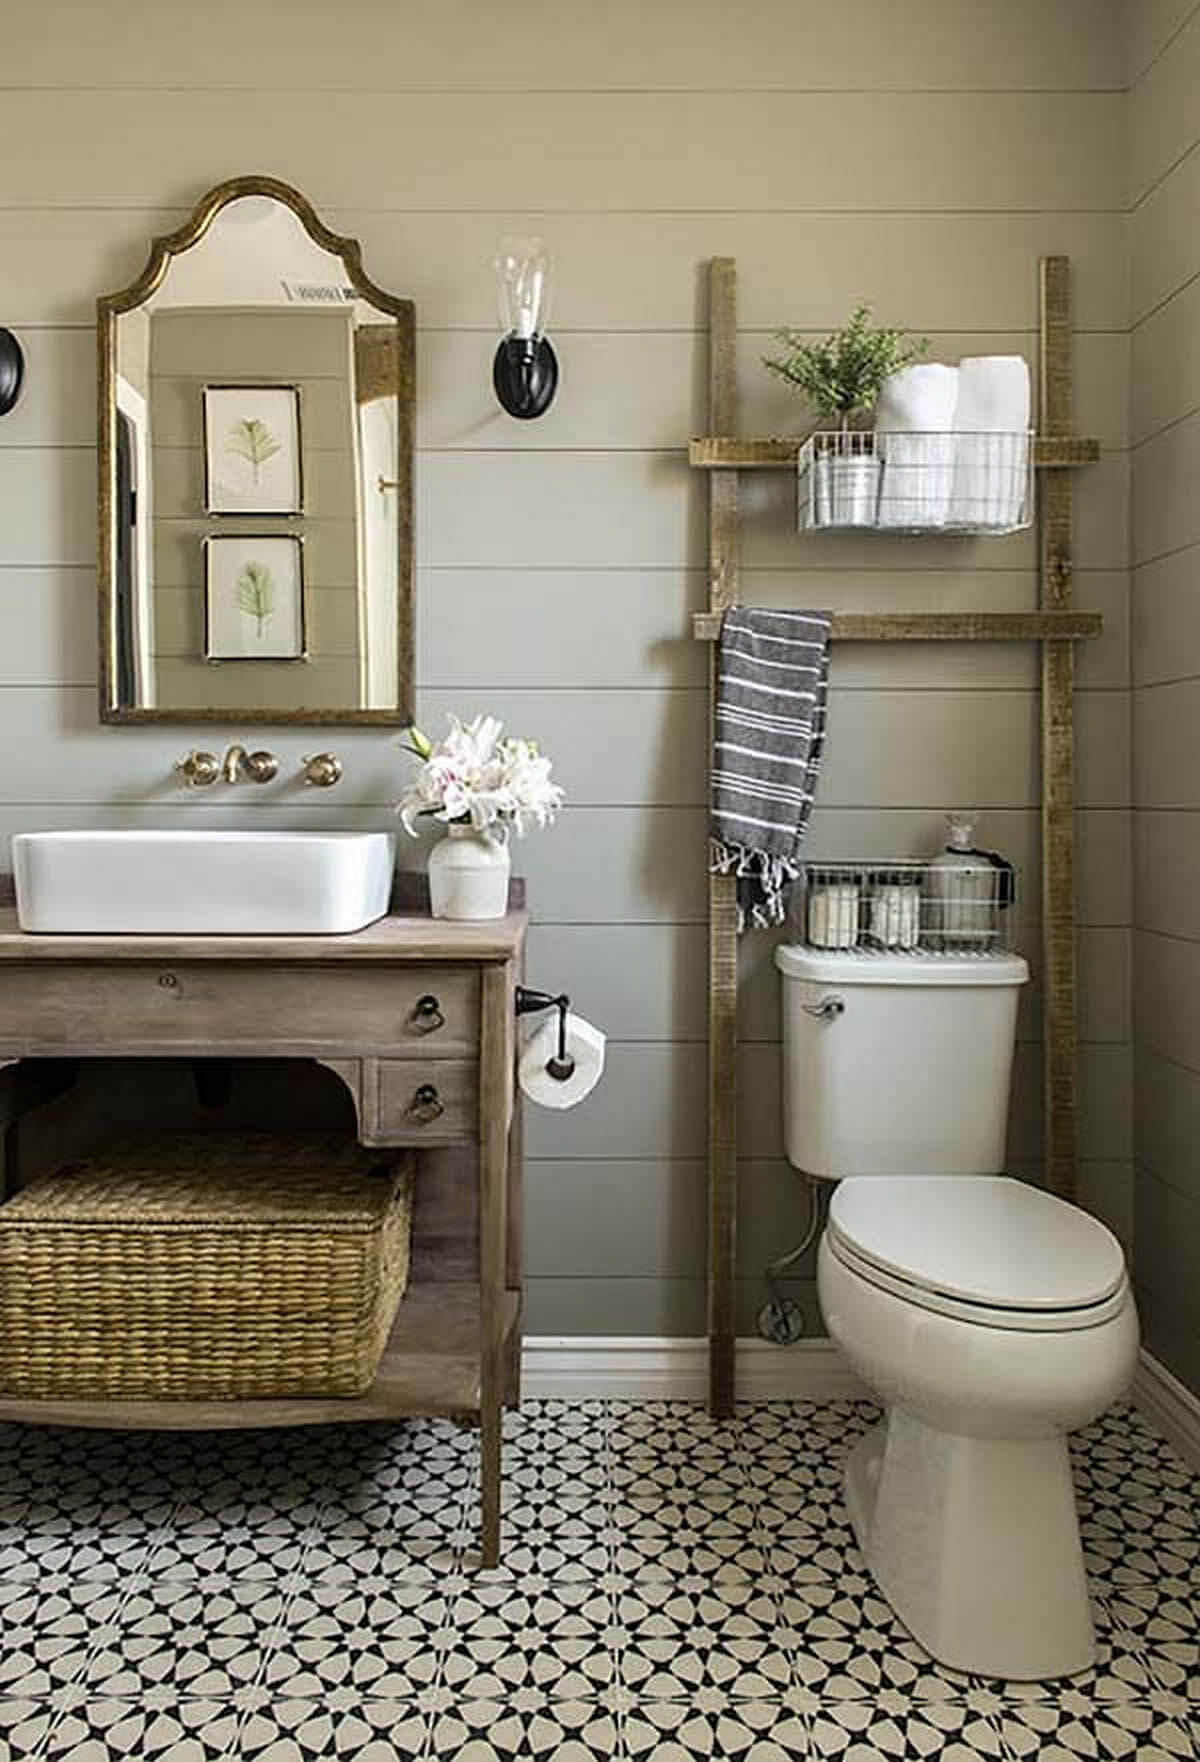 Farmhouse Bathroom Ideas Inspiration 36 Best Farmhouse Bathroom Design And Decor Ideas For 2017 Review